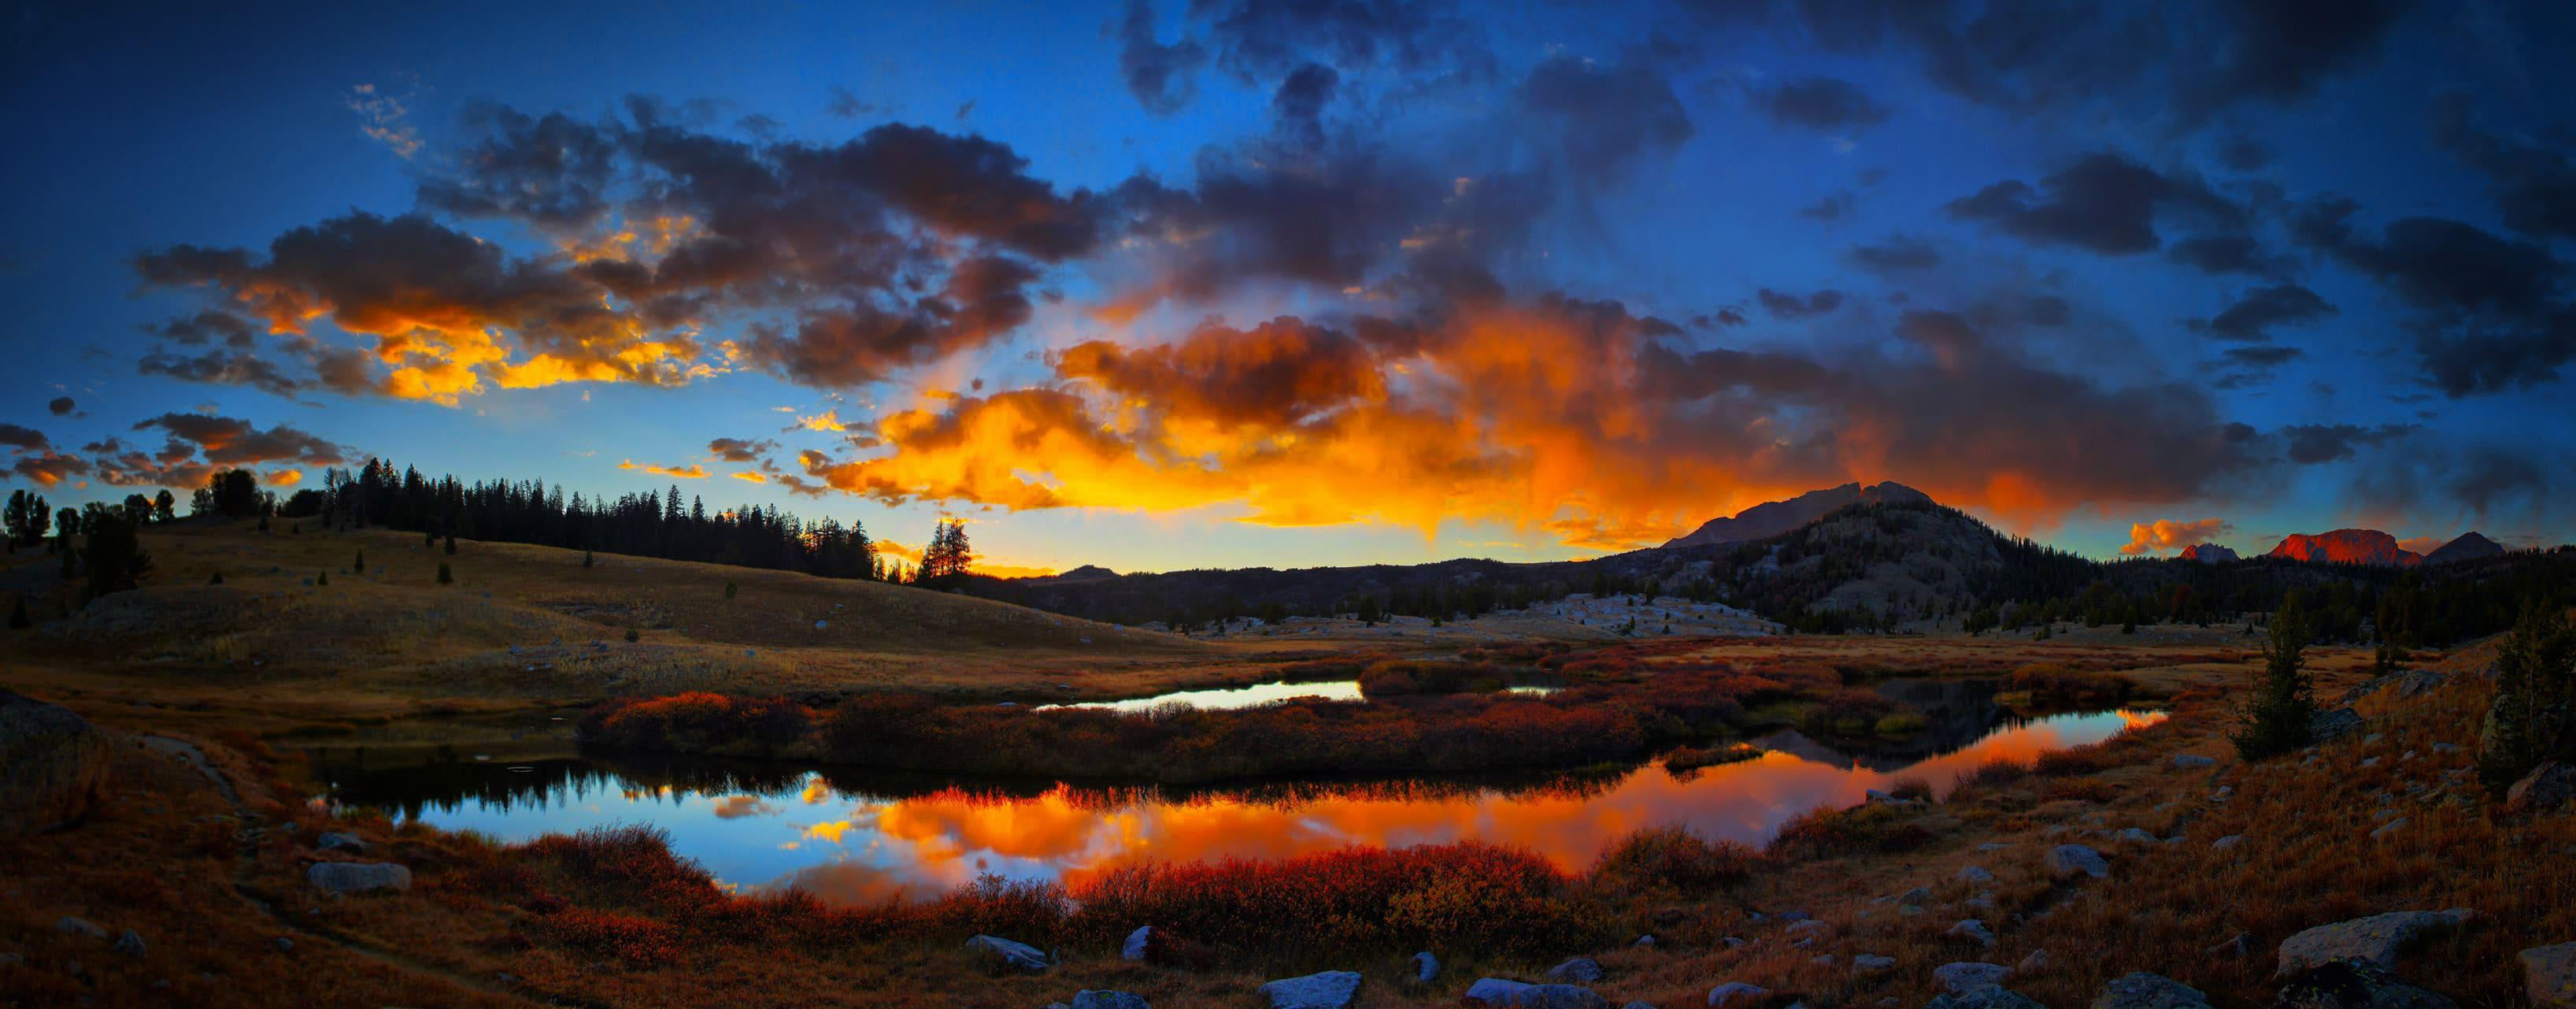 sunset reflections over meadow east of Mount Geikie